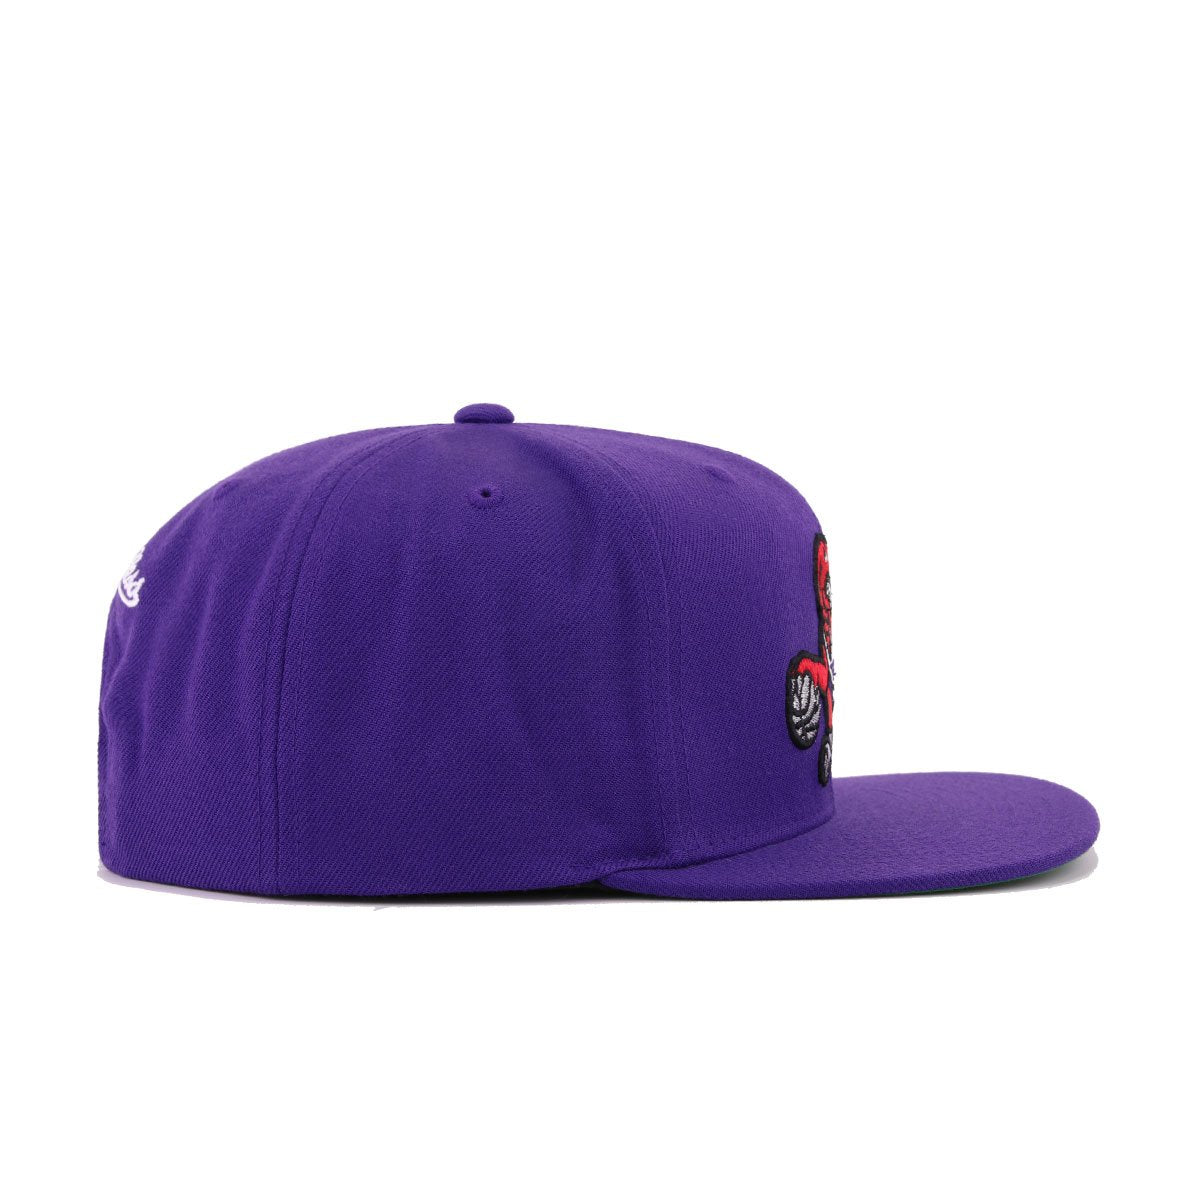 Toronto Raptors Deep Purple 2019 Hardwood Classic Mitchell and Ness Snapback